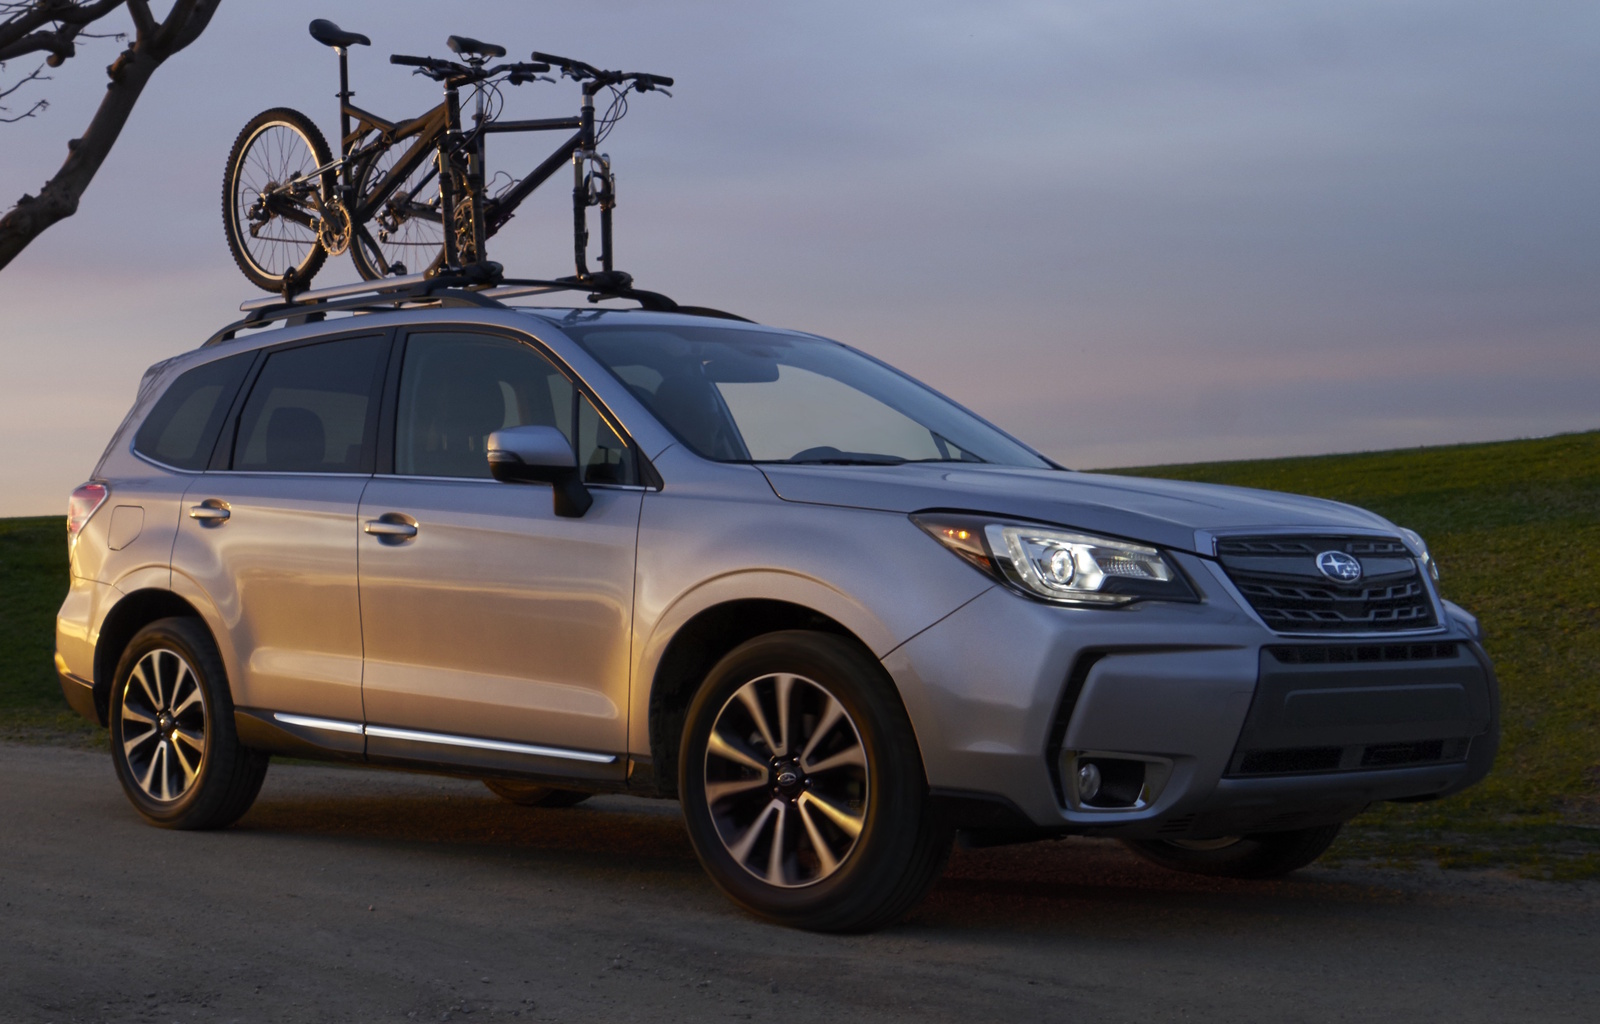 2016 / 2017 Subaru Forester for Sale in Saint Louis, MO - CarGurus